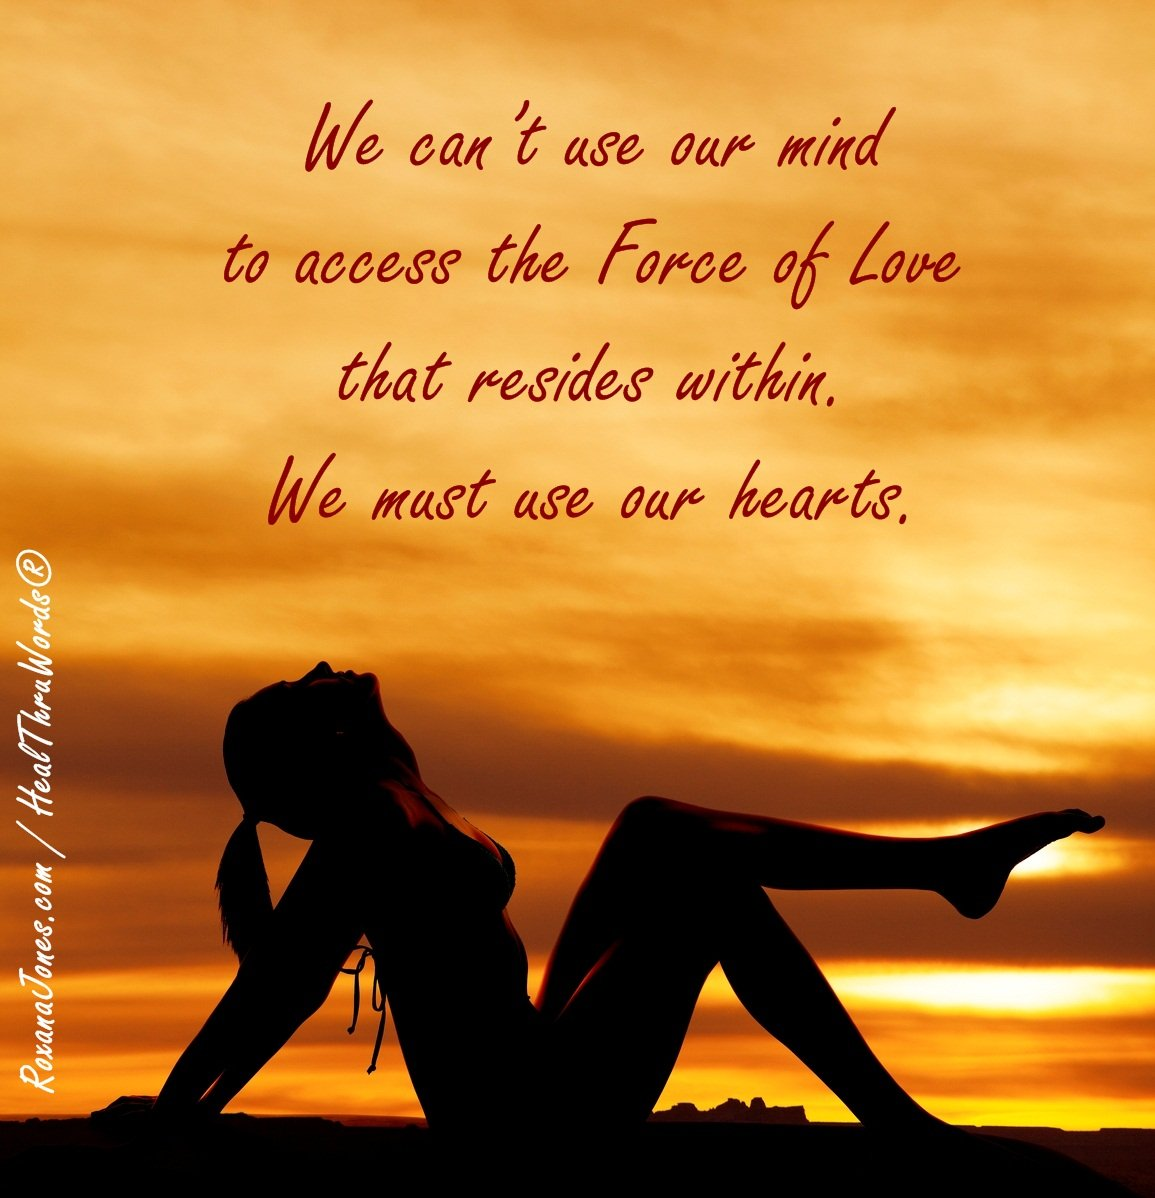 Inspirational Image: Our Force of Love